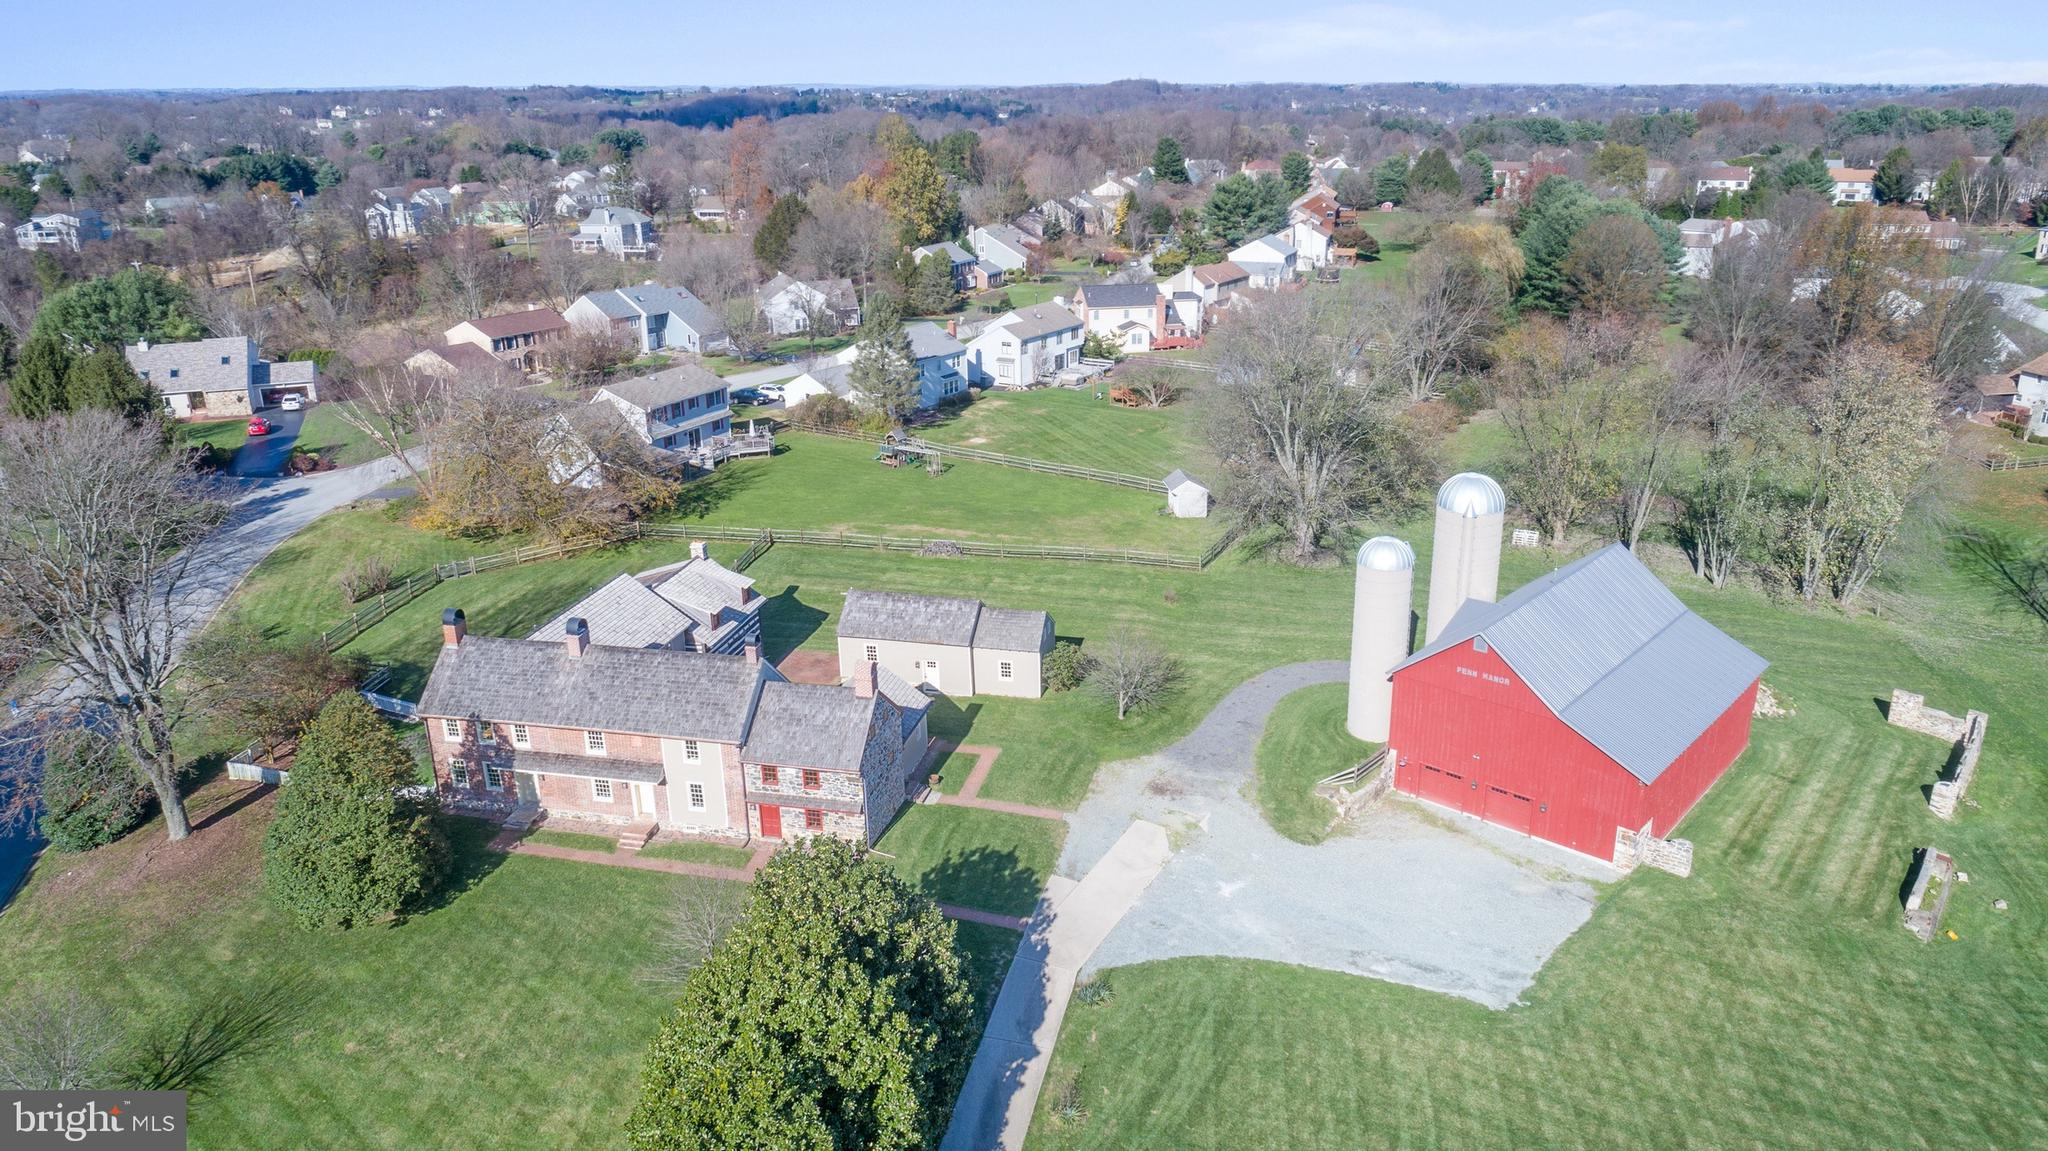 Visit this home virtually: https://my.matterport.com/show/?m=xjujJi7jbZh - Welcome to Penn Manor - this Colonial Center Hall Historical home is located in the heart of Corner Ketch. The land was purchased by the first owner in 1714 from William Penn's son. Mr. Worsley then built one of the first brick homes in New Castle County on the land in 1725. The present owner is only the 3rd family to own this 295 year old historic property. Penn Manor is steeped in local history. The home was restored in 2016 with perfection, impeccable craftsmanship and an amazing addition to compliment the period of the original home. Entering into the home from the addition it is evident that every detail was thought of to tie the old with the new. The game room offers reclaimed floors, and ship lap ceiling with beams emulates an open feeling of a renovated barn. Entering the Sun Porch next it is detailed with beautifully laid brick, replica tin chandeliers, pitched roof line, bright windows and exposed brick from the original part of the home. The Farm Kitchen is outfitted with custom cabinetry by Steve Wagner with warm colors, reproduction hardware, soap stone counters & a butcher block center island. Luxury appliances will exceed the expectations of even the most ardent of home chefs. A bright Breakfast Room is located off to the side of the Kitchen with space for a large farm table. The Kitchen transitions into the Family Room that is a Log Cabin that was transferred to the property from Pennsylvania. The stone fireplace was built with existing stones located on the property. The first floor addition offers a sizeable Mud Room and adjacent Laundry Room. The back stair case leads you to the second story addition. The Owners Suite is complete with reclaimed hardwood floors, an exposed wall of brick, well appointed full bath & walk in closet. The additional two bedrooms in the new section have dormer ceilings, walk in closets and full bathrooms with designer finishes. Walk down the hallway to the brick and stone wall and enter into the original home. There you will find an original Owners Suite with a charming fire place and adjacent full bathroom with a jetted tub. Down the hallway are two additional bedrooms that share a Jack n Jill full bathroom. The front stairs lead you to the original Foyer flanked on one side by the formal Dining Room complete with wainscotting, fireplace, full windows with deep window sills. The other side presents the original Living Room, well sized with fireplace, original windows & hardwood floors. The Library is adjacent to the Living Room and offers built ins & a fireplace. The two story Great Room exudes charm from the Colonial era. There was a ceiling that was removed to create the two story feature. The stone fireplace was rebuilt with stones from the property and the stone hearth & bread oven were restored. The character in this room speaks from the masonry & stone exposed walls. The inviting Guest Cottage offers a versatile space with a full renovation in 2016 from an existing structure to create a living space with Great Room, complete Kitchen, Loft and Full Bathroom. The ship lap cathedral ceiling with exposed beams are a highlight to the Cottage. The Bank Barn is a historic gem and the anchor to the property ... this also was rebuilt by Amish craftsmen during the 2016 renovation. The Barn has been brought into this century offering heated space in the upper level with a basketball court, a batting cage & volley ball net. The lower Barn provides ample storage along with space to house 6 cars. This is a great home for a large family and extended family!  It is not often that a home of this caliber that is steeped in history becomes available for sale. The cost of the renovations exceeds the list price of this home, the owner spared no expense in restoring Penn Manor - it is the perfect blend of history with the amenities of the modern world.